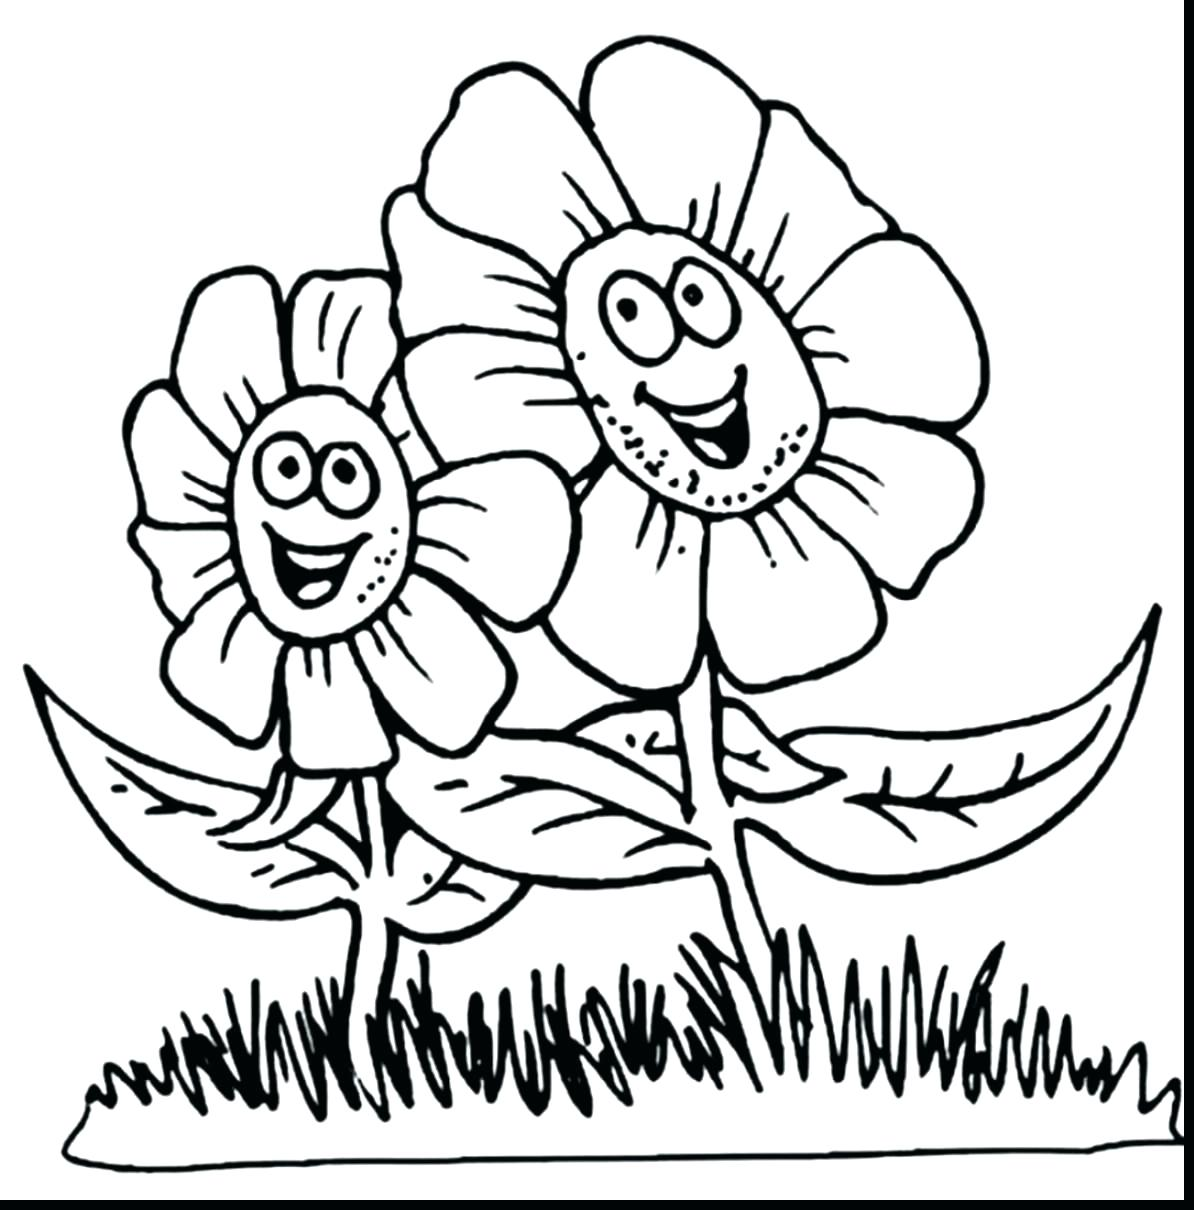 1194x1210 Coloring Pretty Flowers Coloring Pages Flower Drawings To Draw